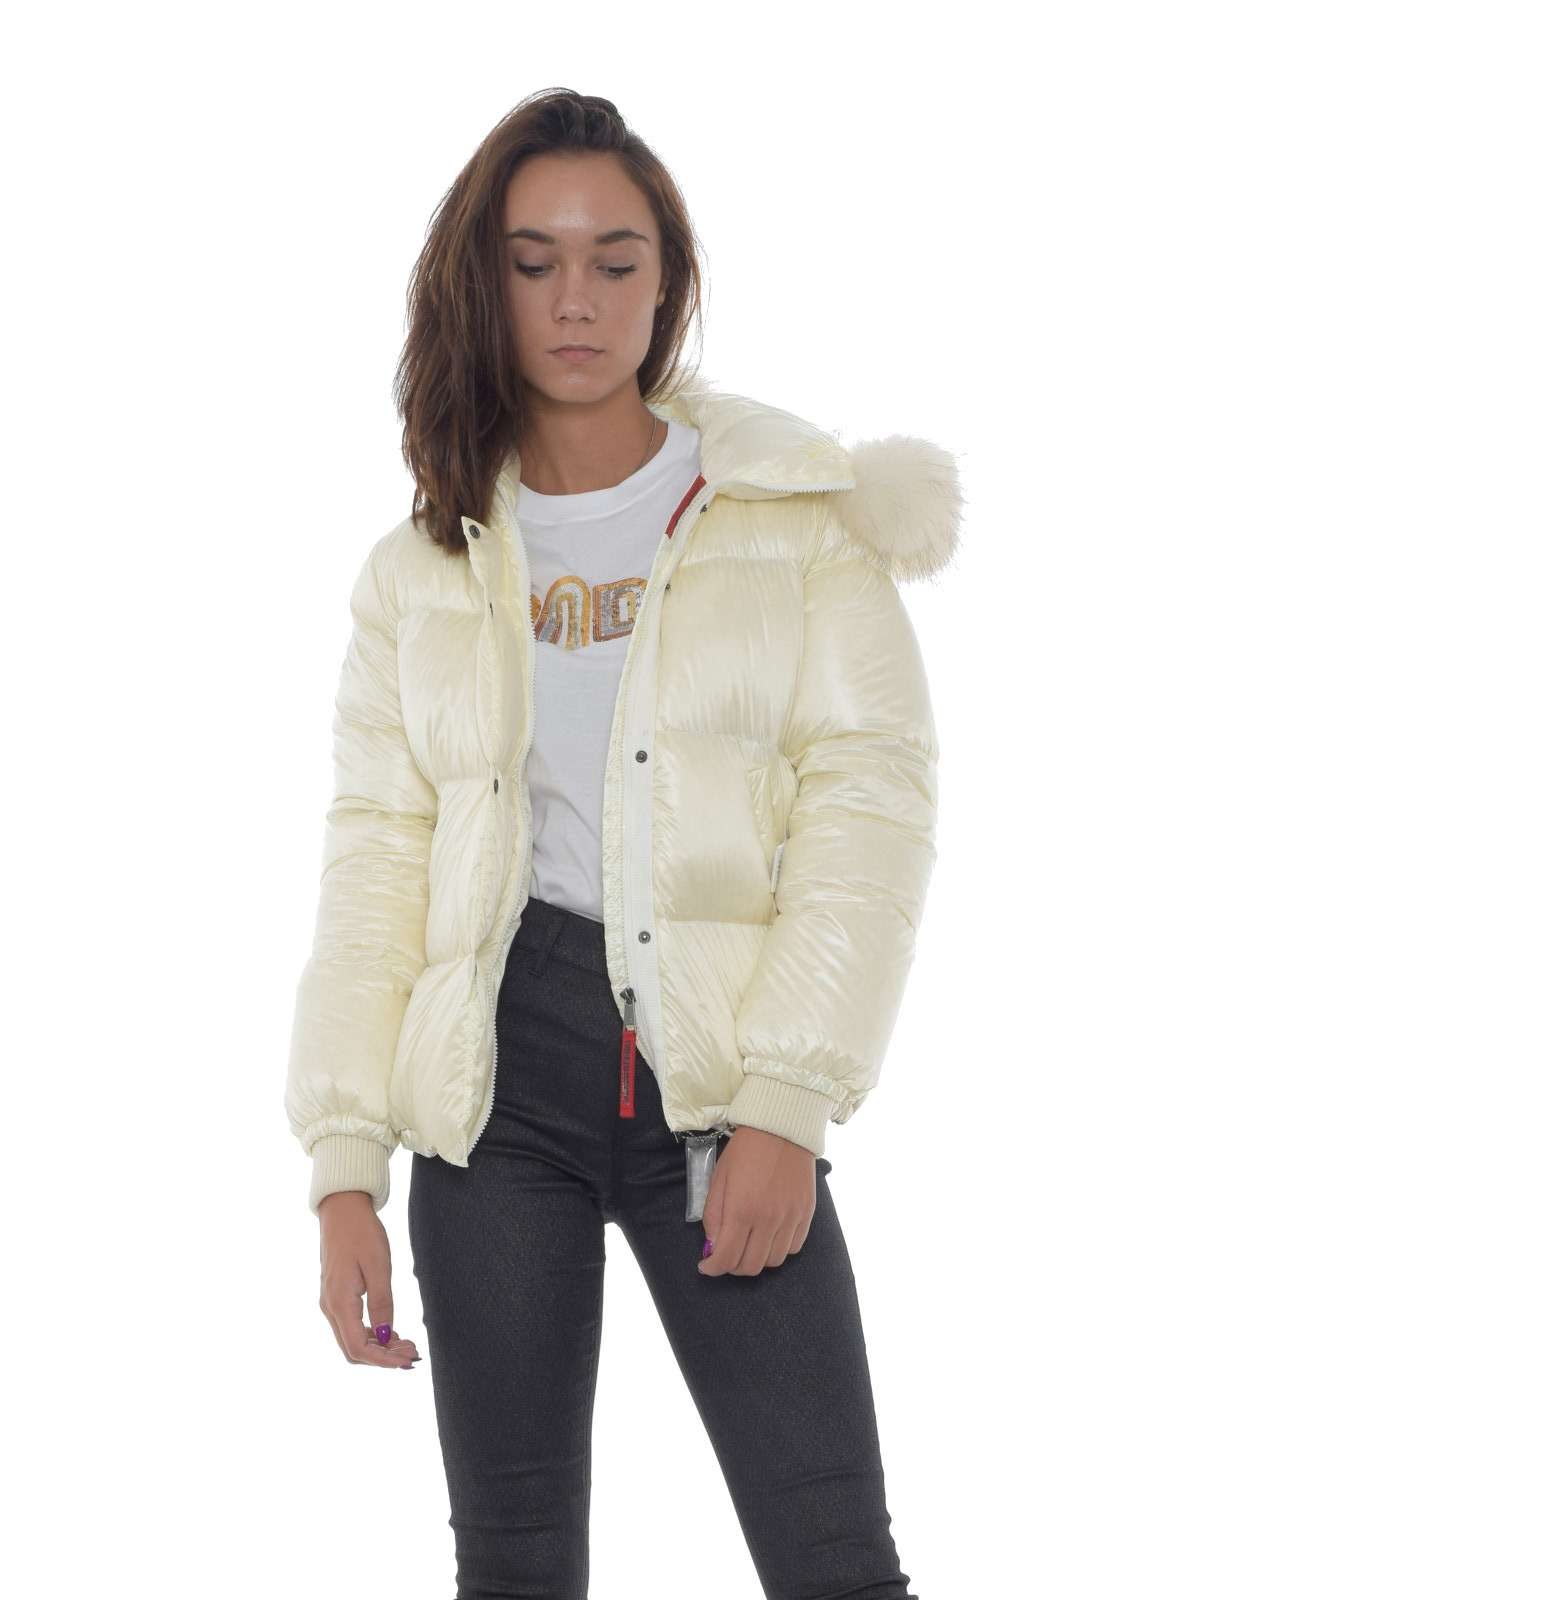 https://www.parmax.com/media/catalog/product/a/i/AI-outlet_parmax-giubbino-donna-FreedomDay-ifrw6020n-A.jpg